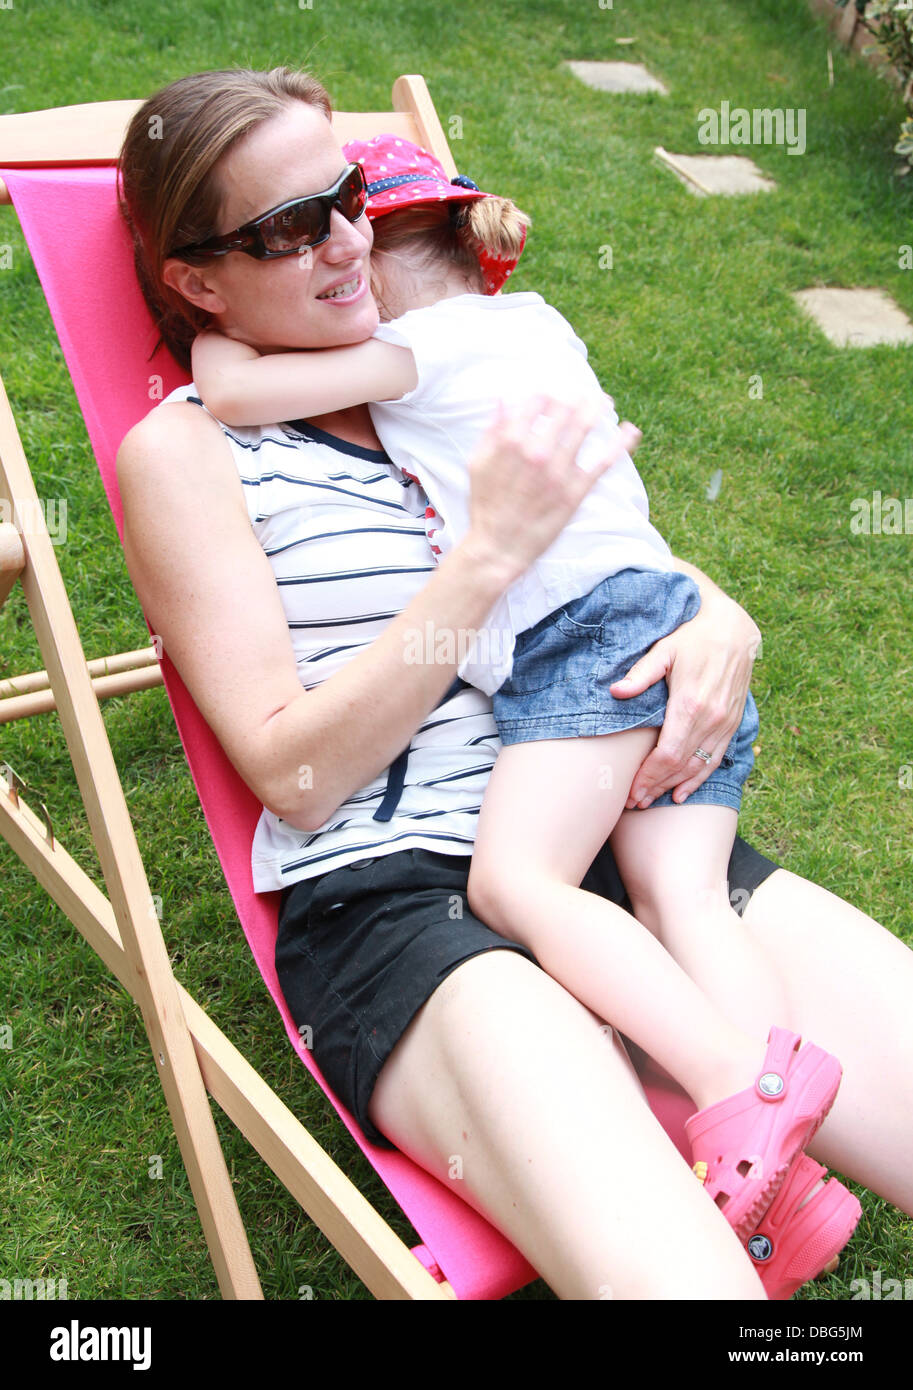 Mum comforting her child while sitting in a deckchair. - Stock Image